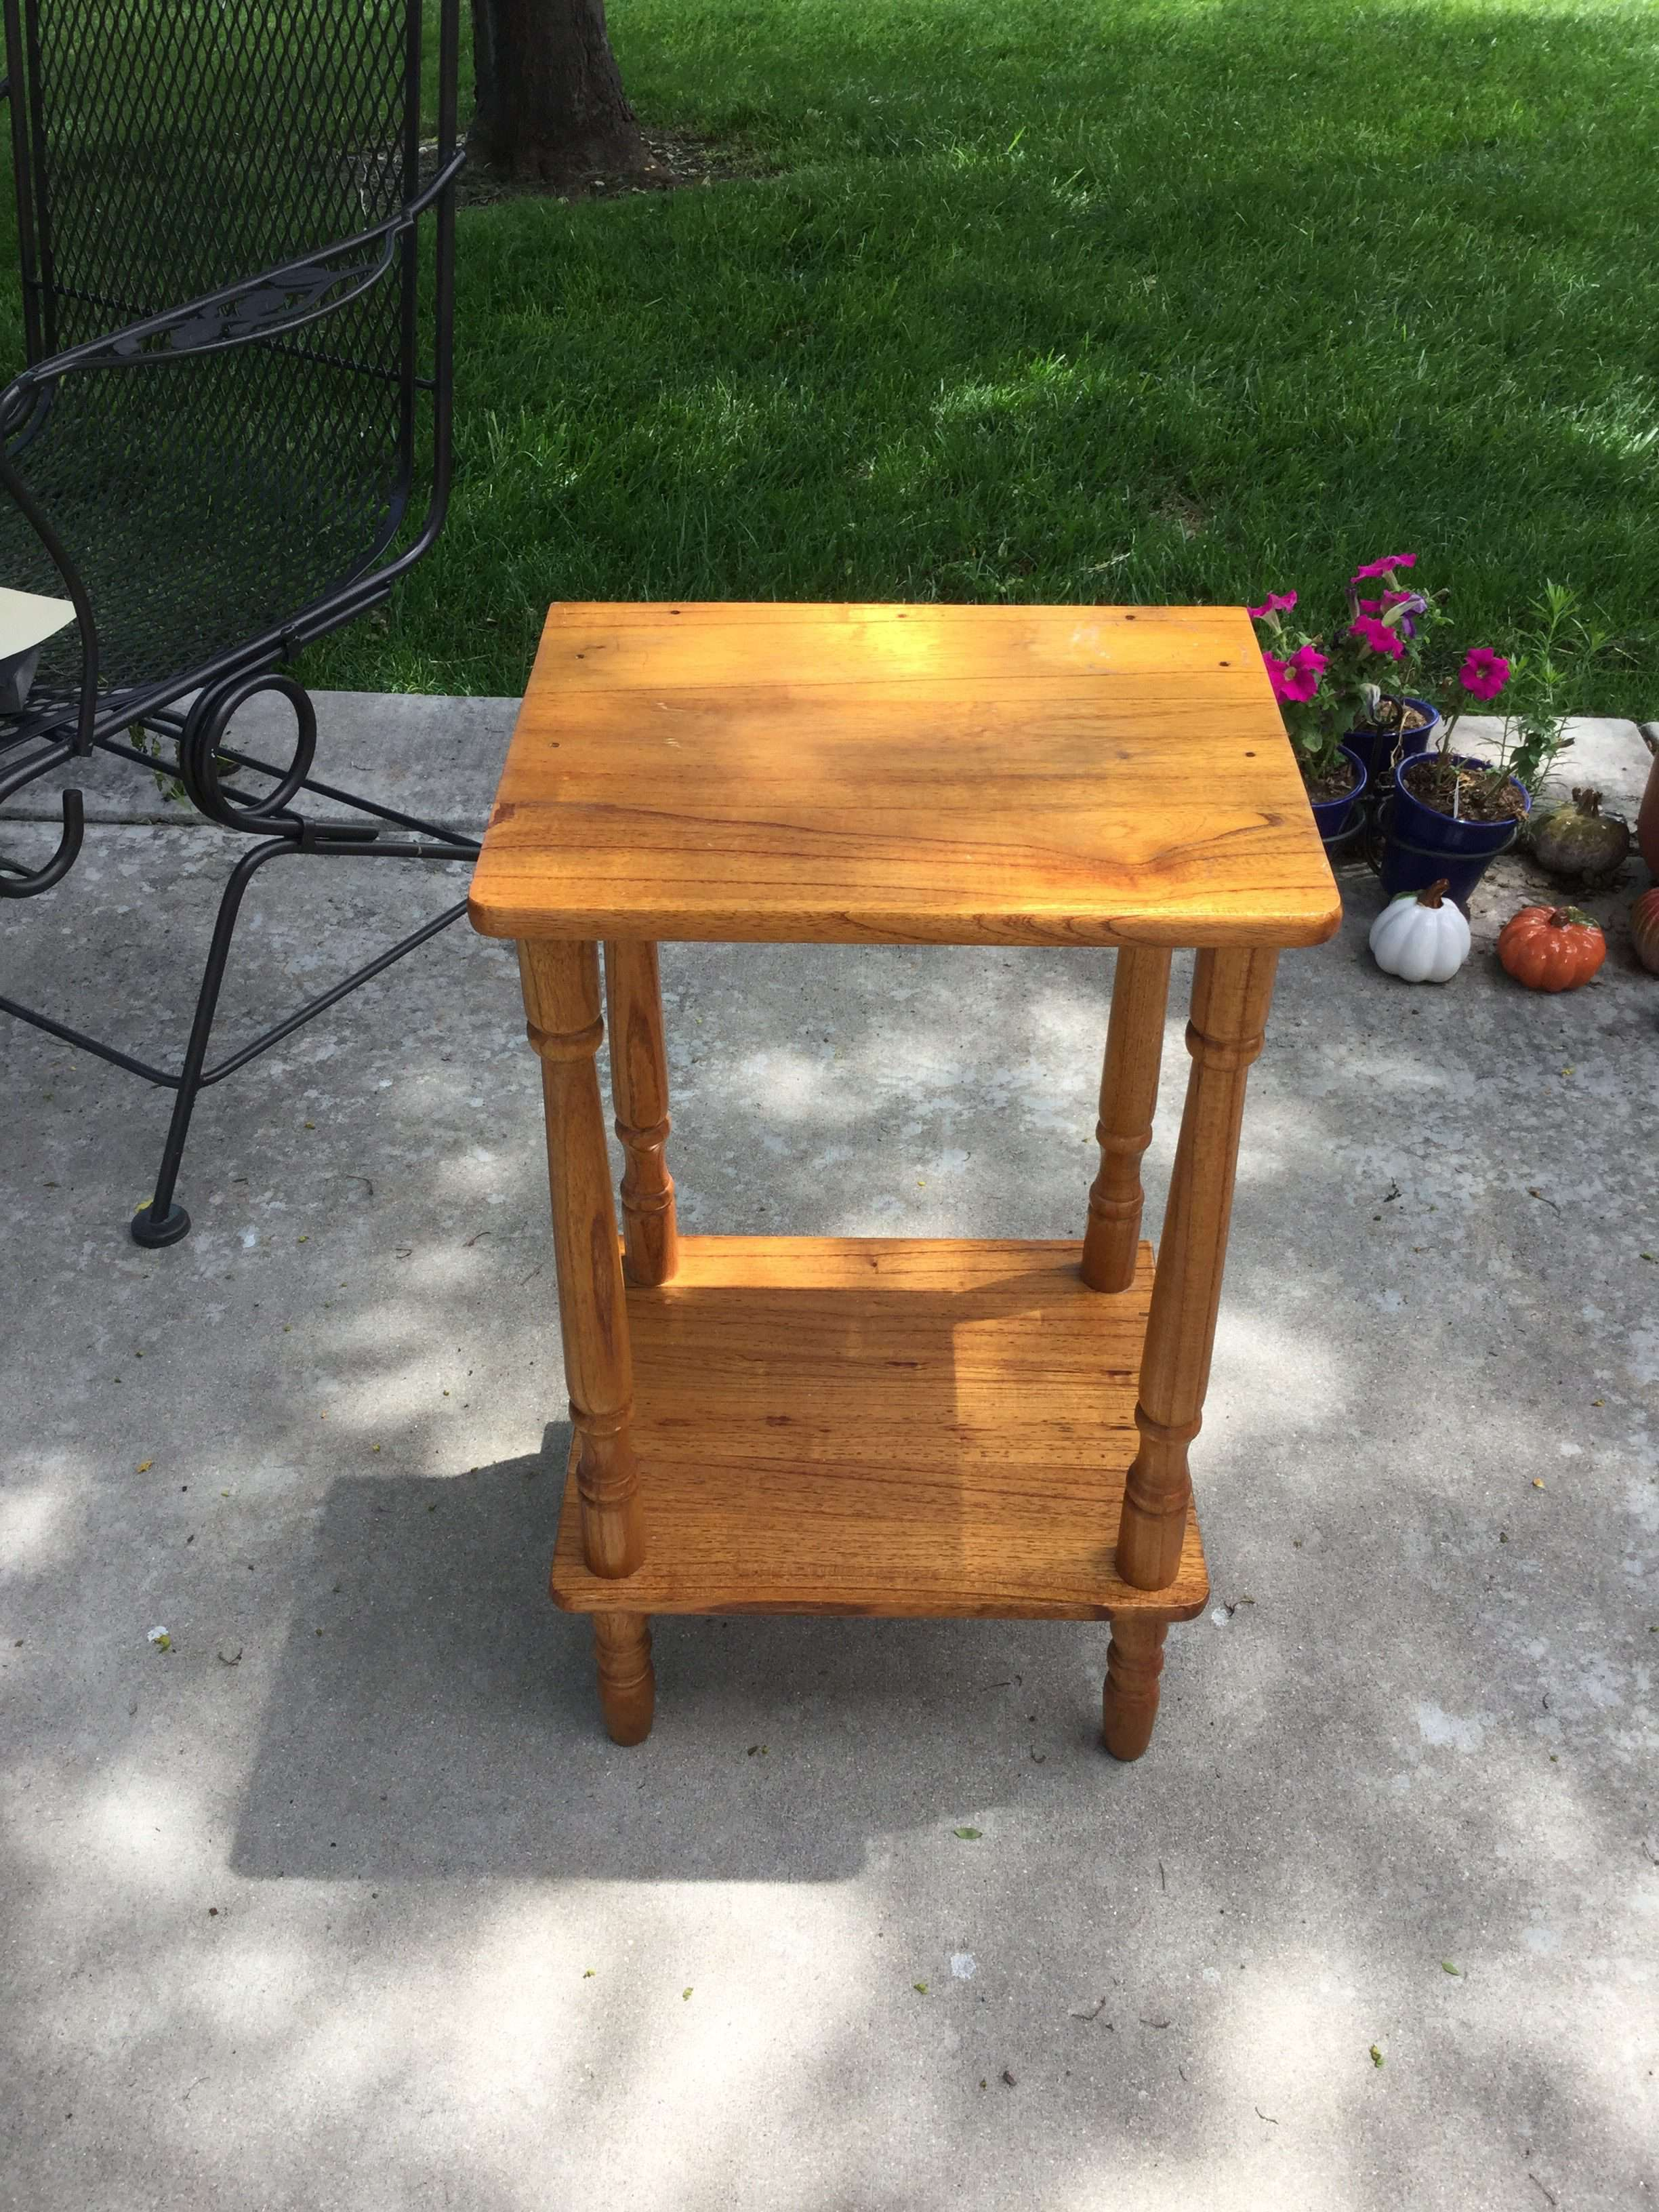 Here is the side table that I purchased for $1 at a garage sale. It had holes on top, some sort of sticky residue from something that was sitting on it, and some scratches.